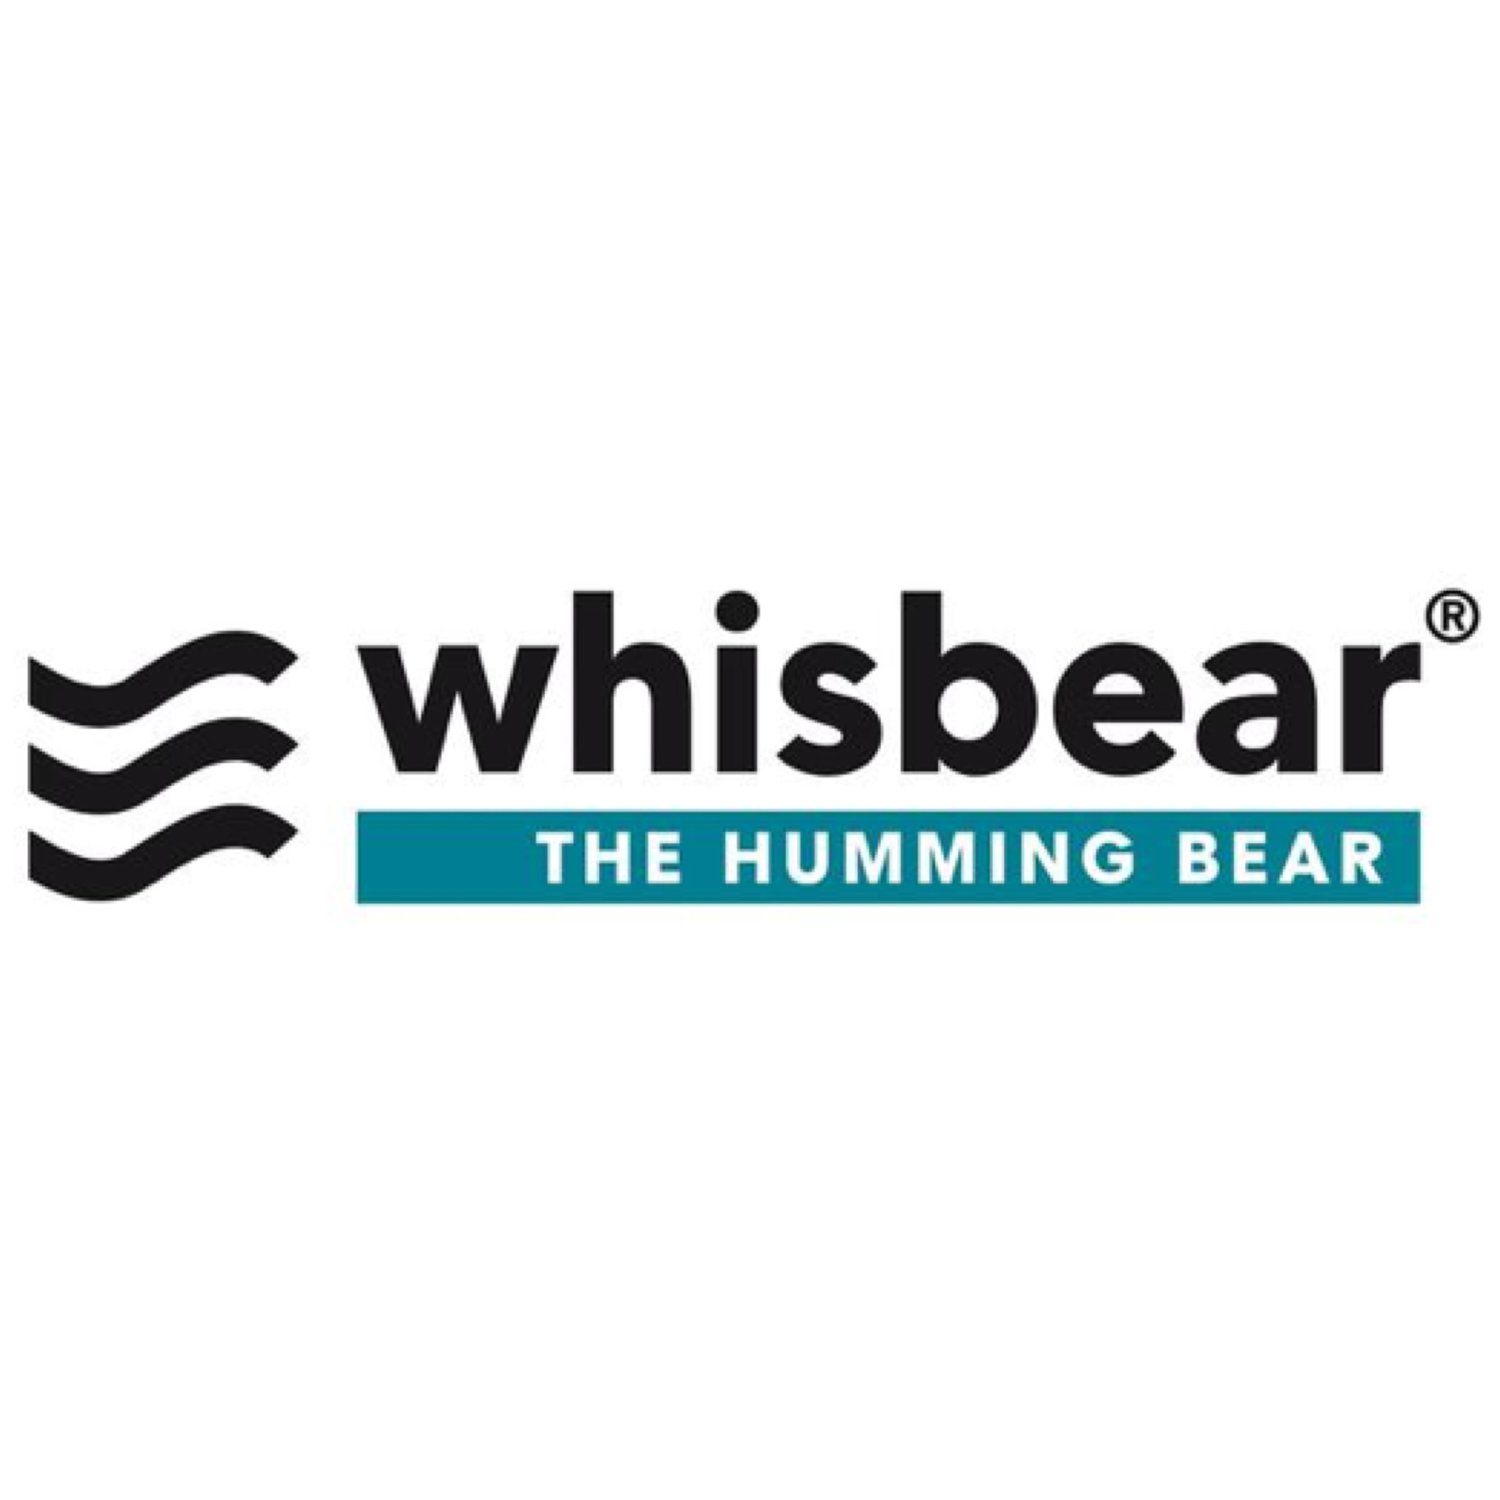 White Noise Sleep   Whisbear the Humming Bear Review   Me Becoming